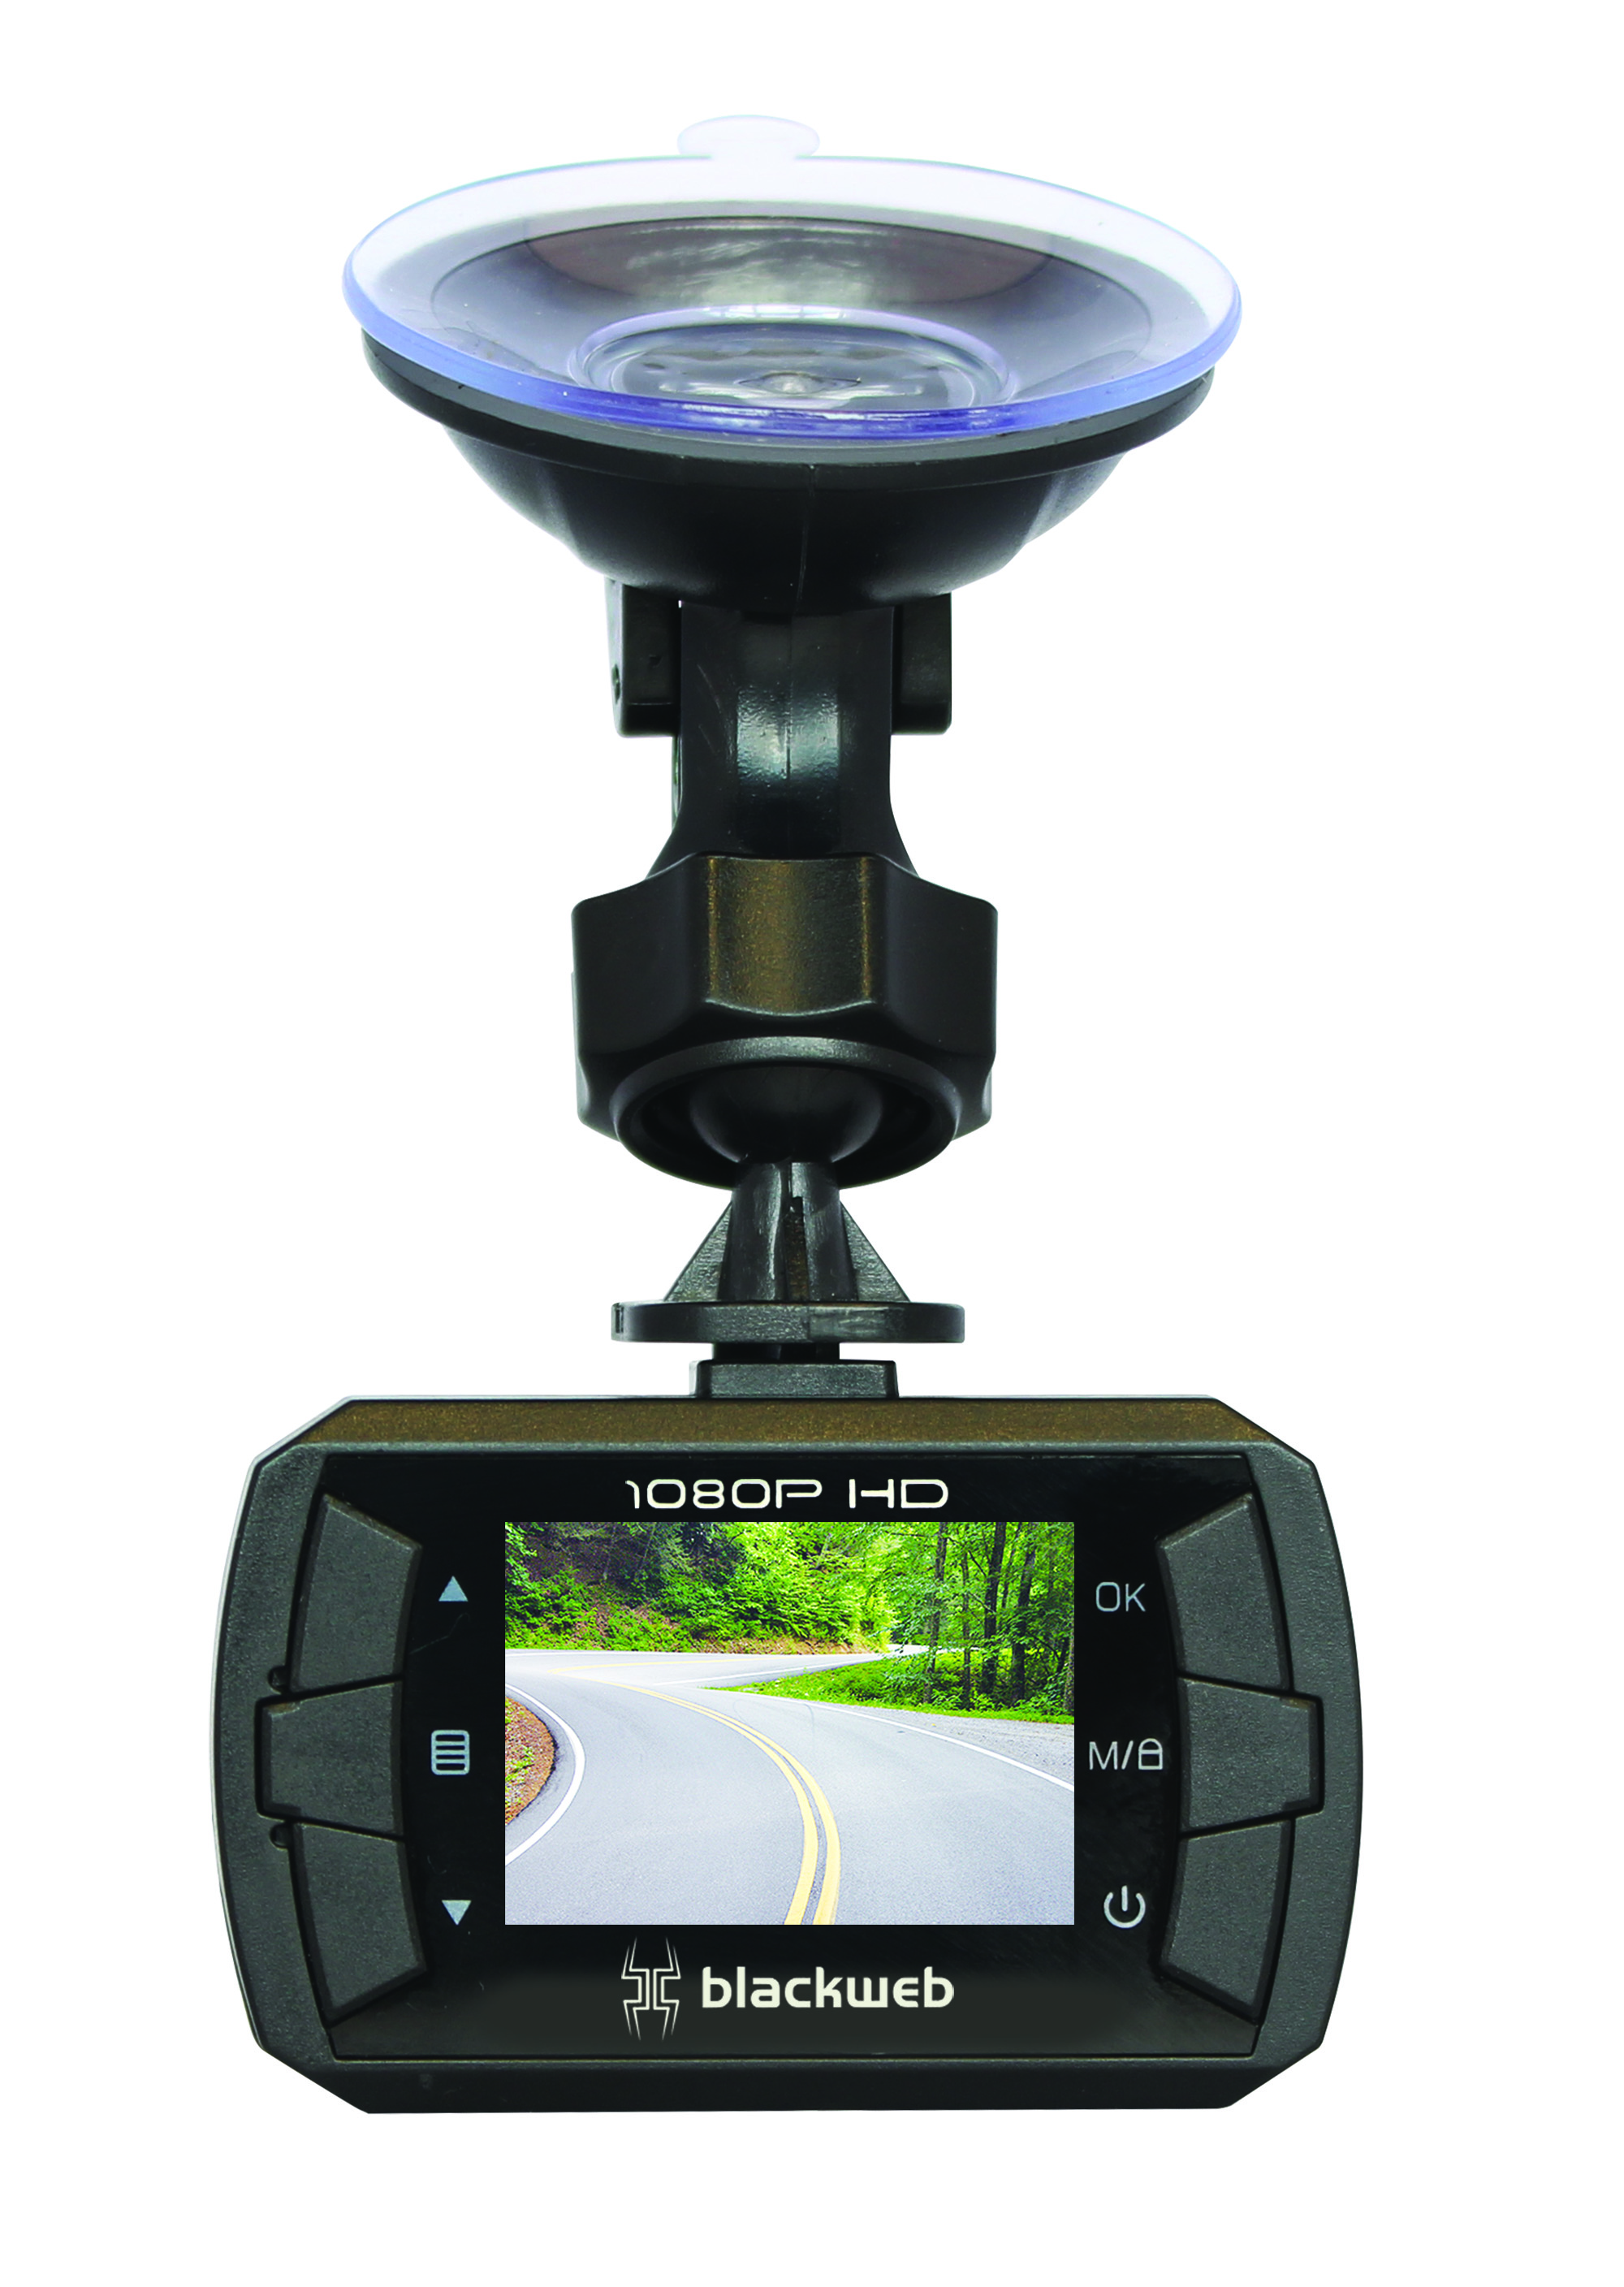 1d70845d4f6 Blackweb Digital Dash cam With 1080P Camera And Sd Card - Walmart.com